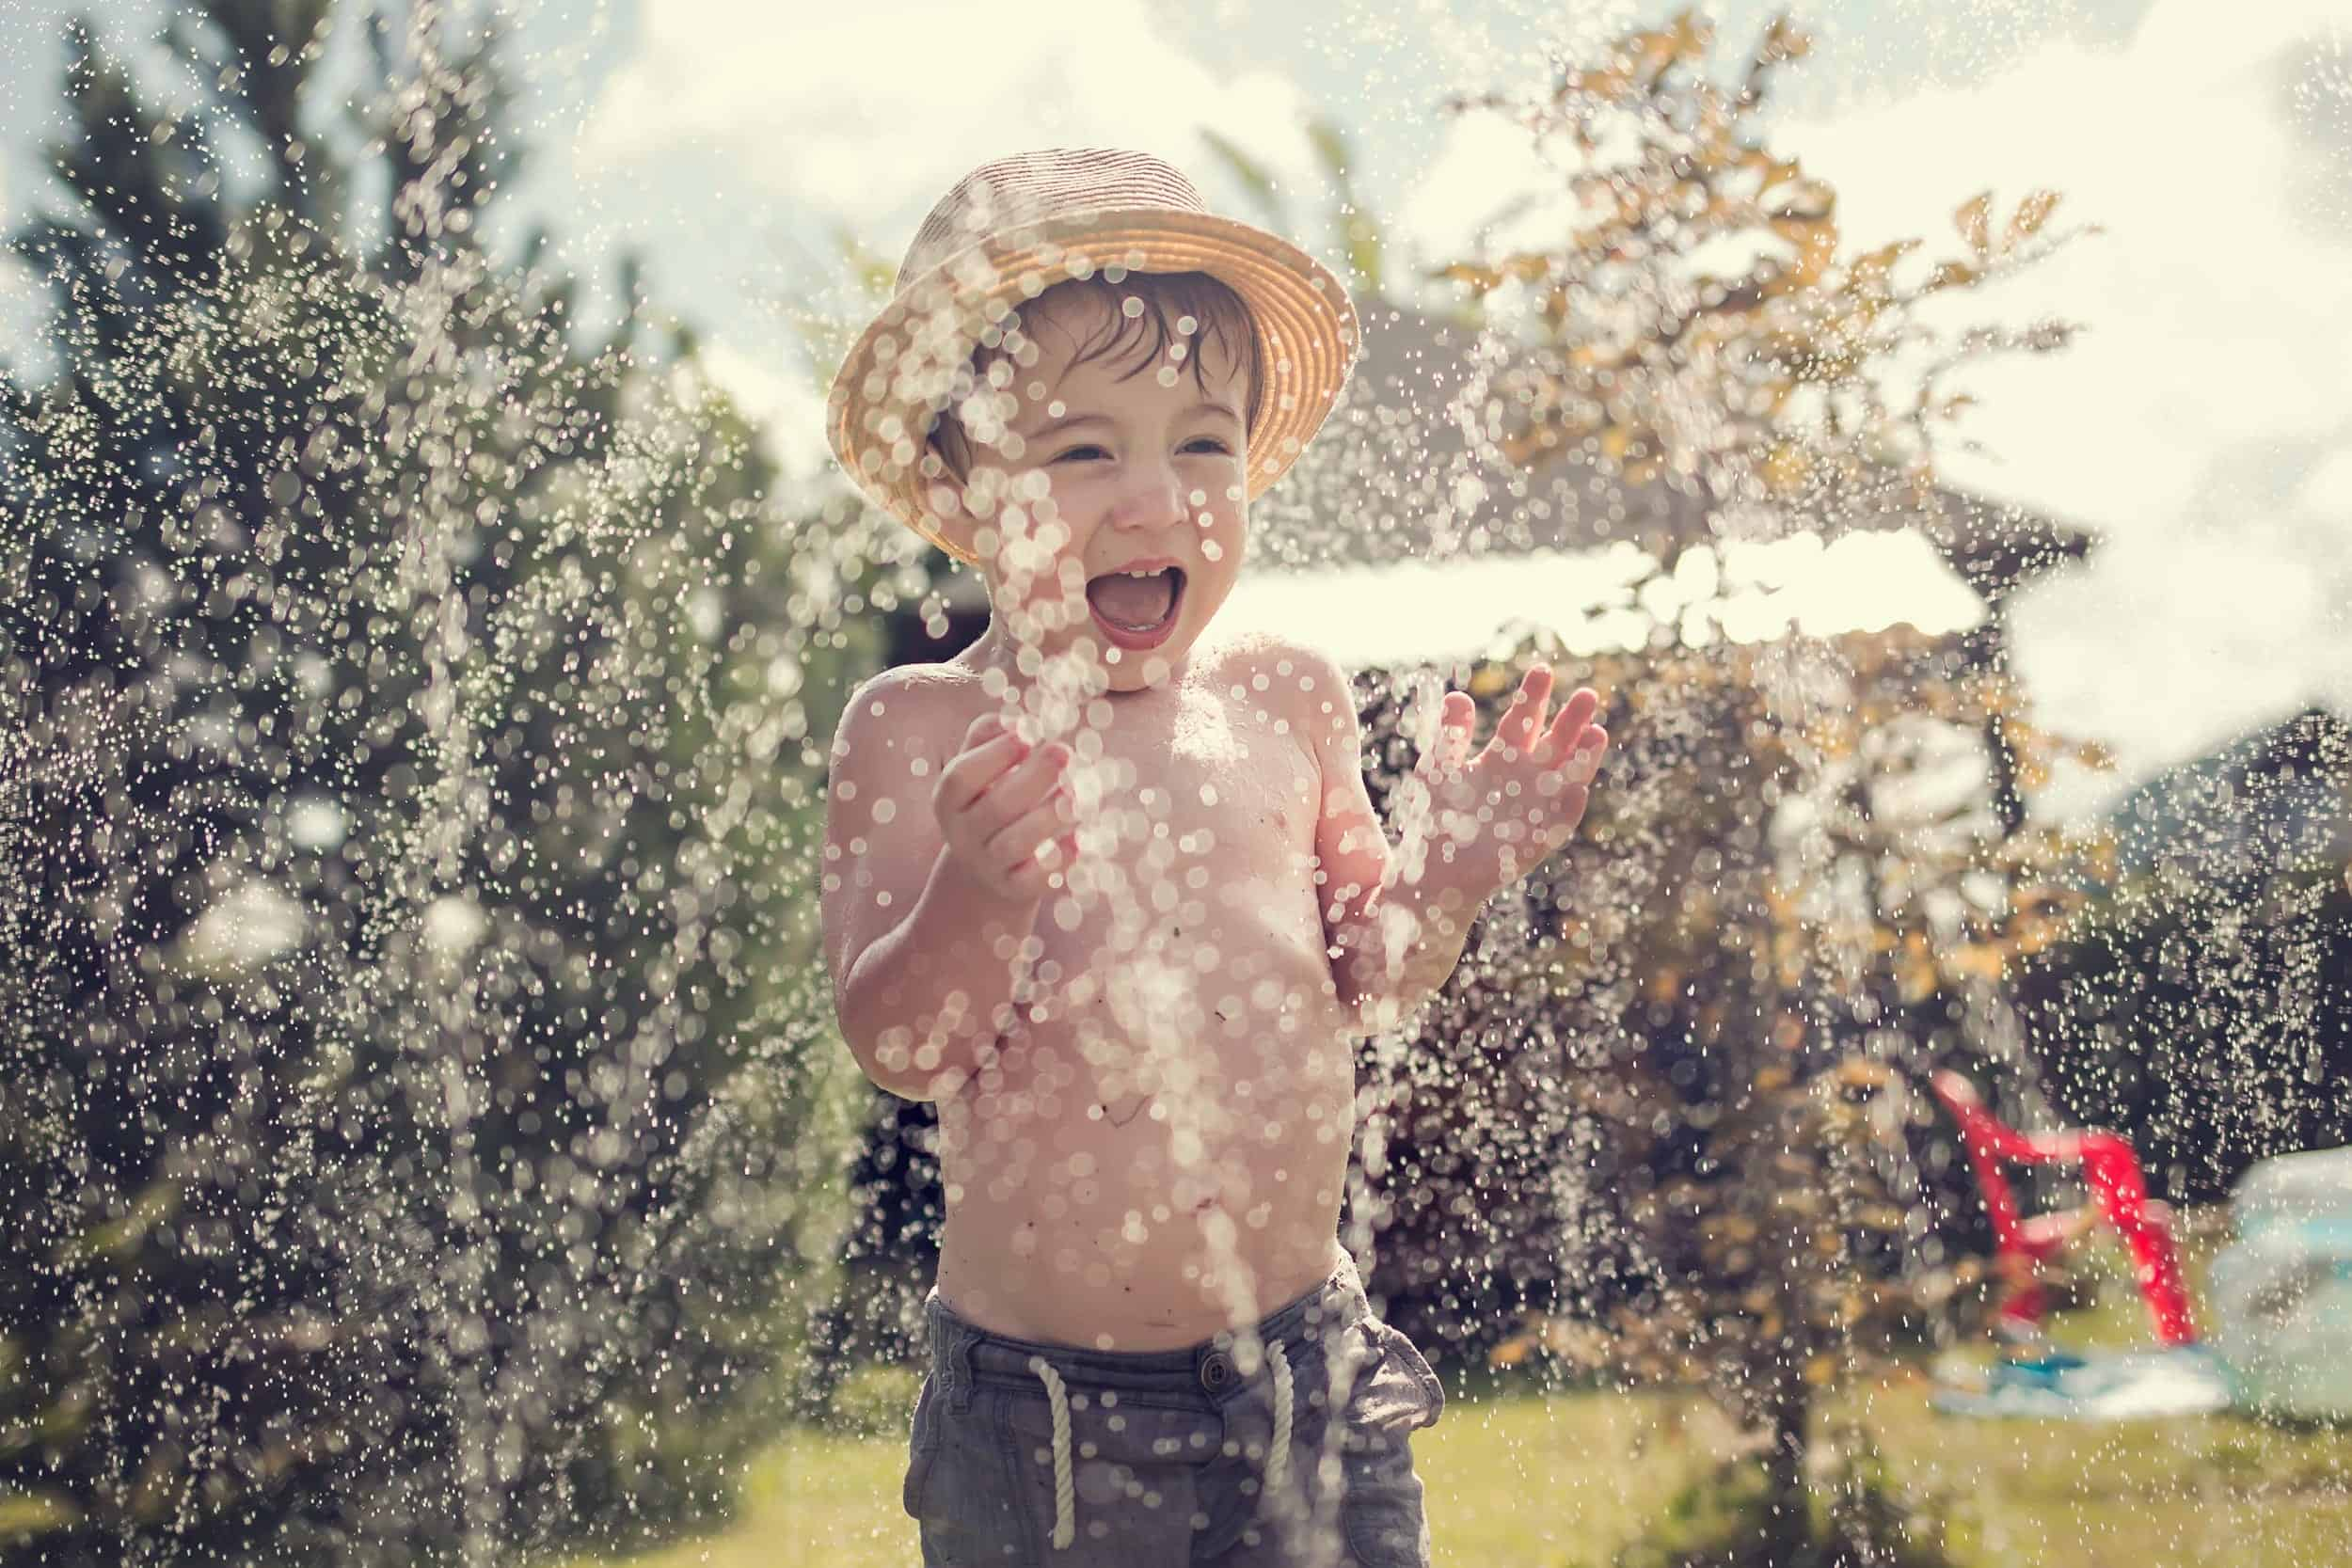 Cute little boy in straw hat is laughing and having fun running under water spraying hose.